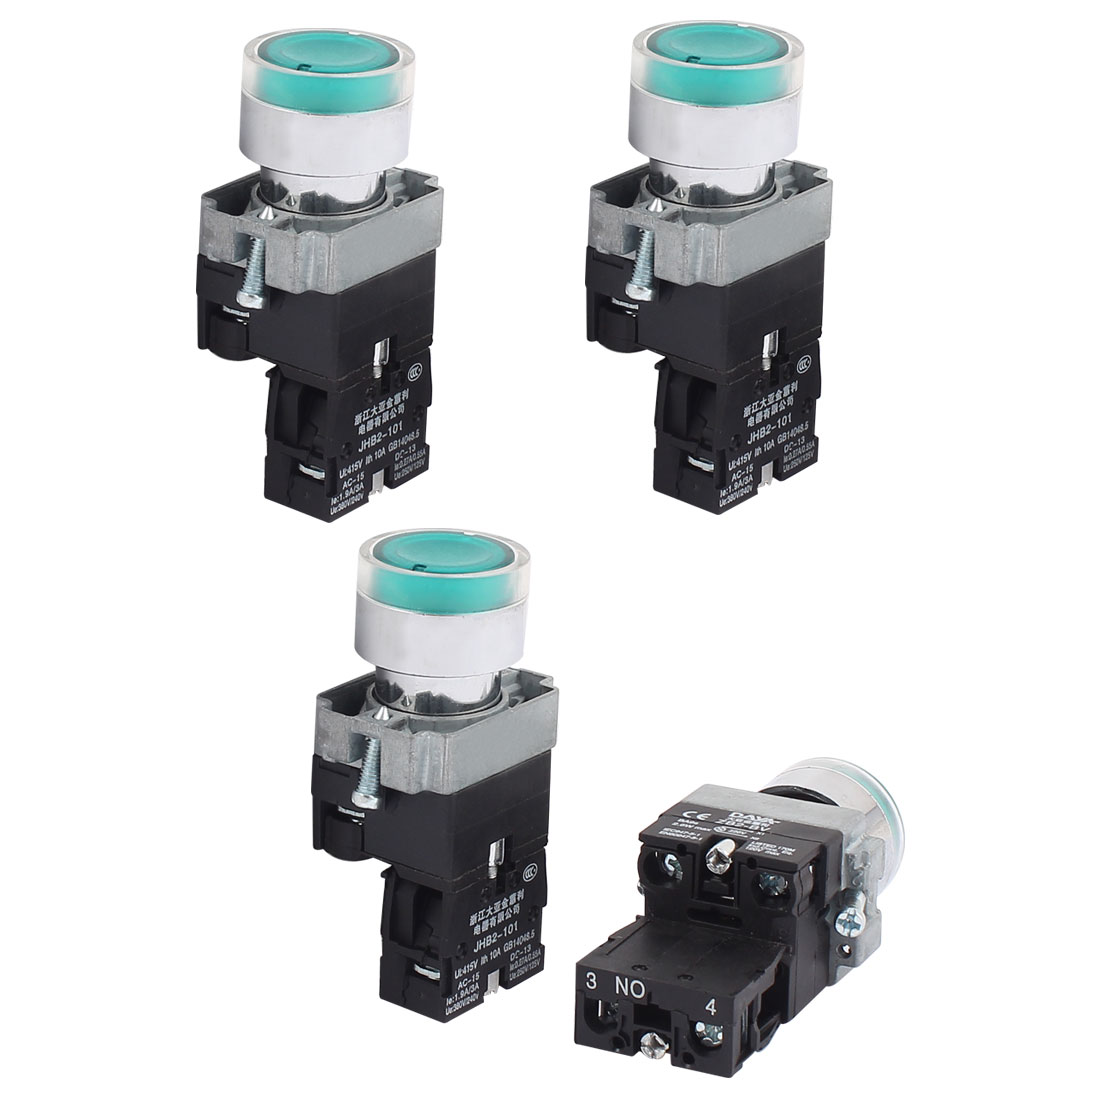 AC 415V 10A Momentary NO Green Light Push Button Switch Contact Block 4PCS